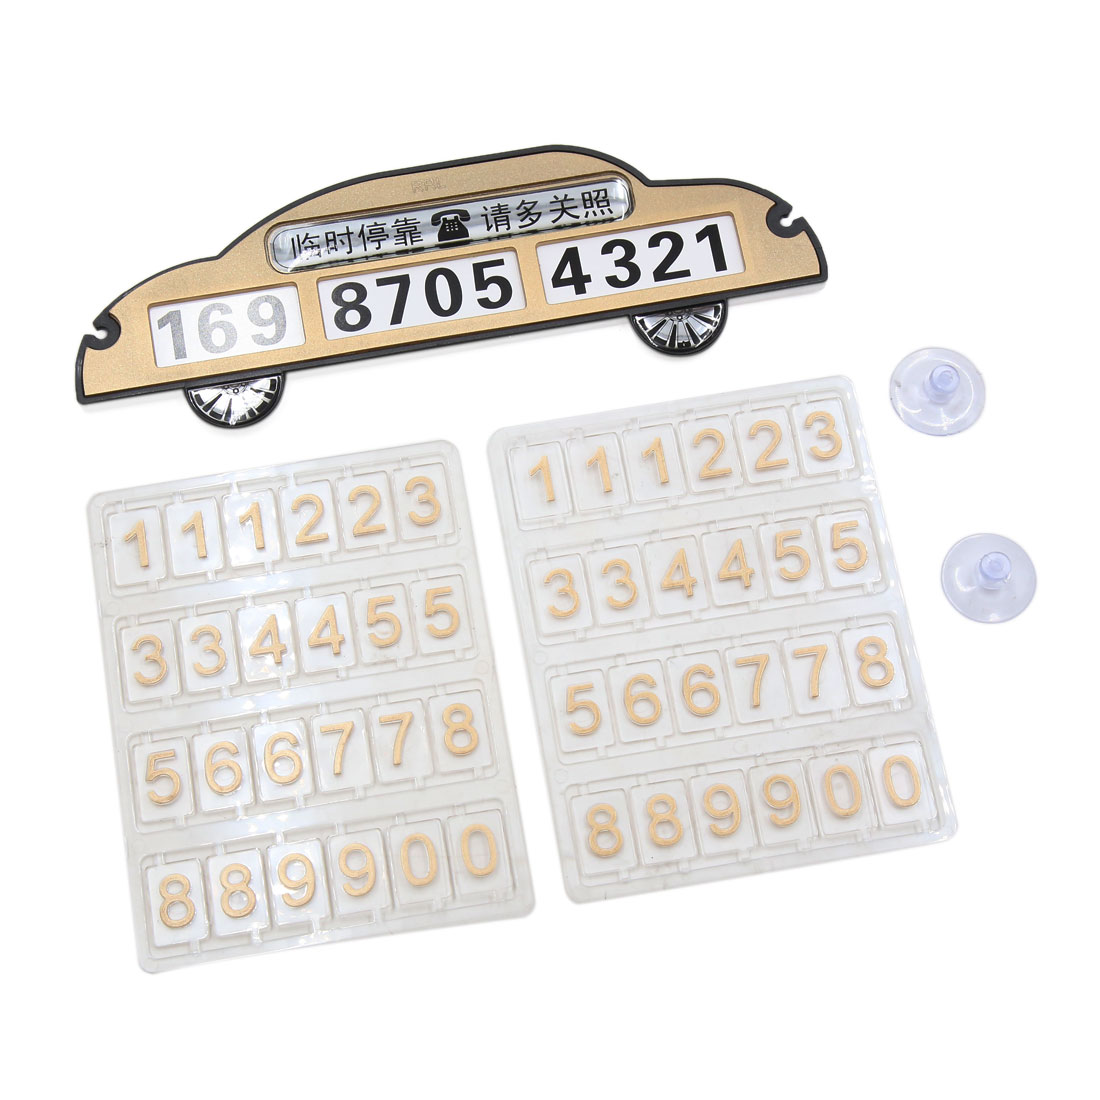 Gold Tone Car Luminous Temporary Notification Puzzle Parking Phone Number Card